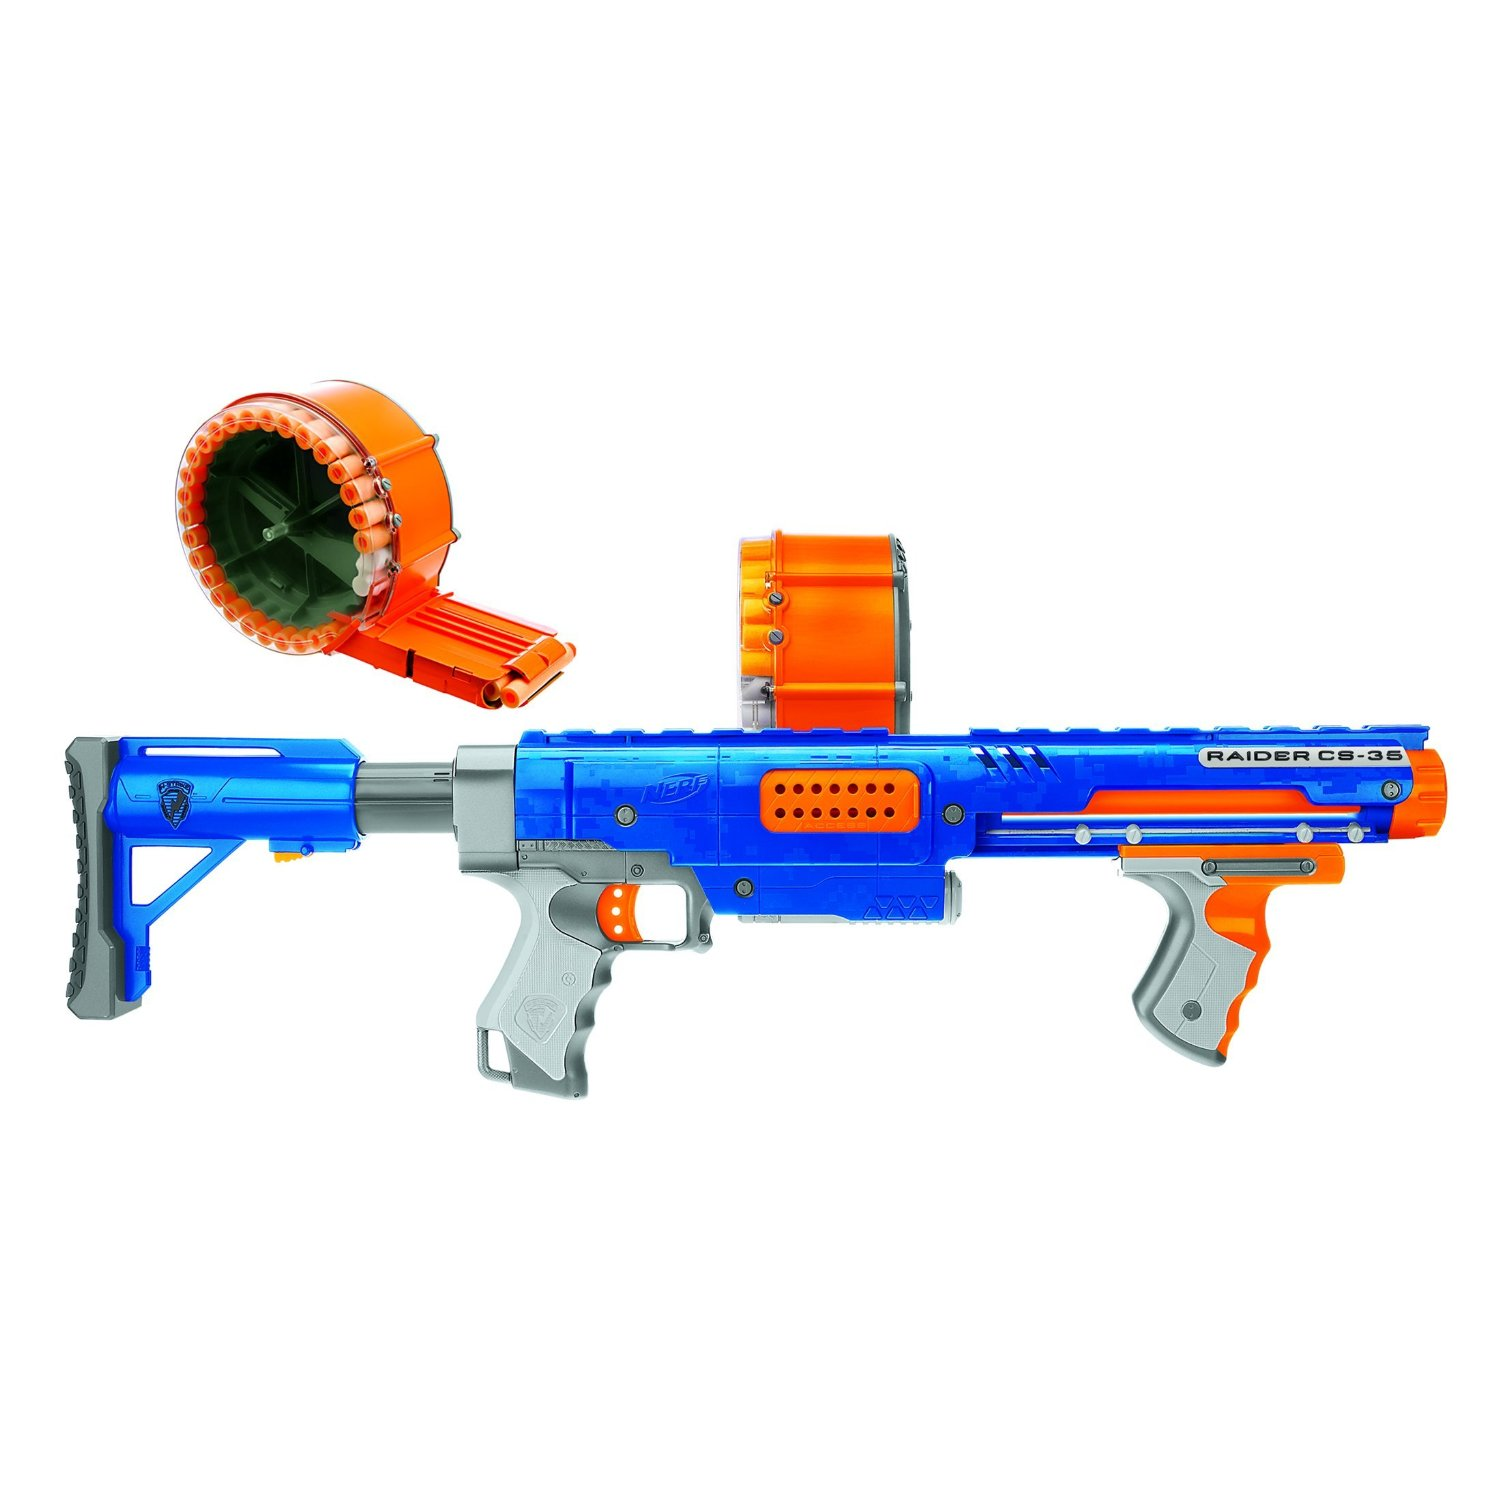 Nerf guns are known for the two famous sets such as the nerf raider cs